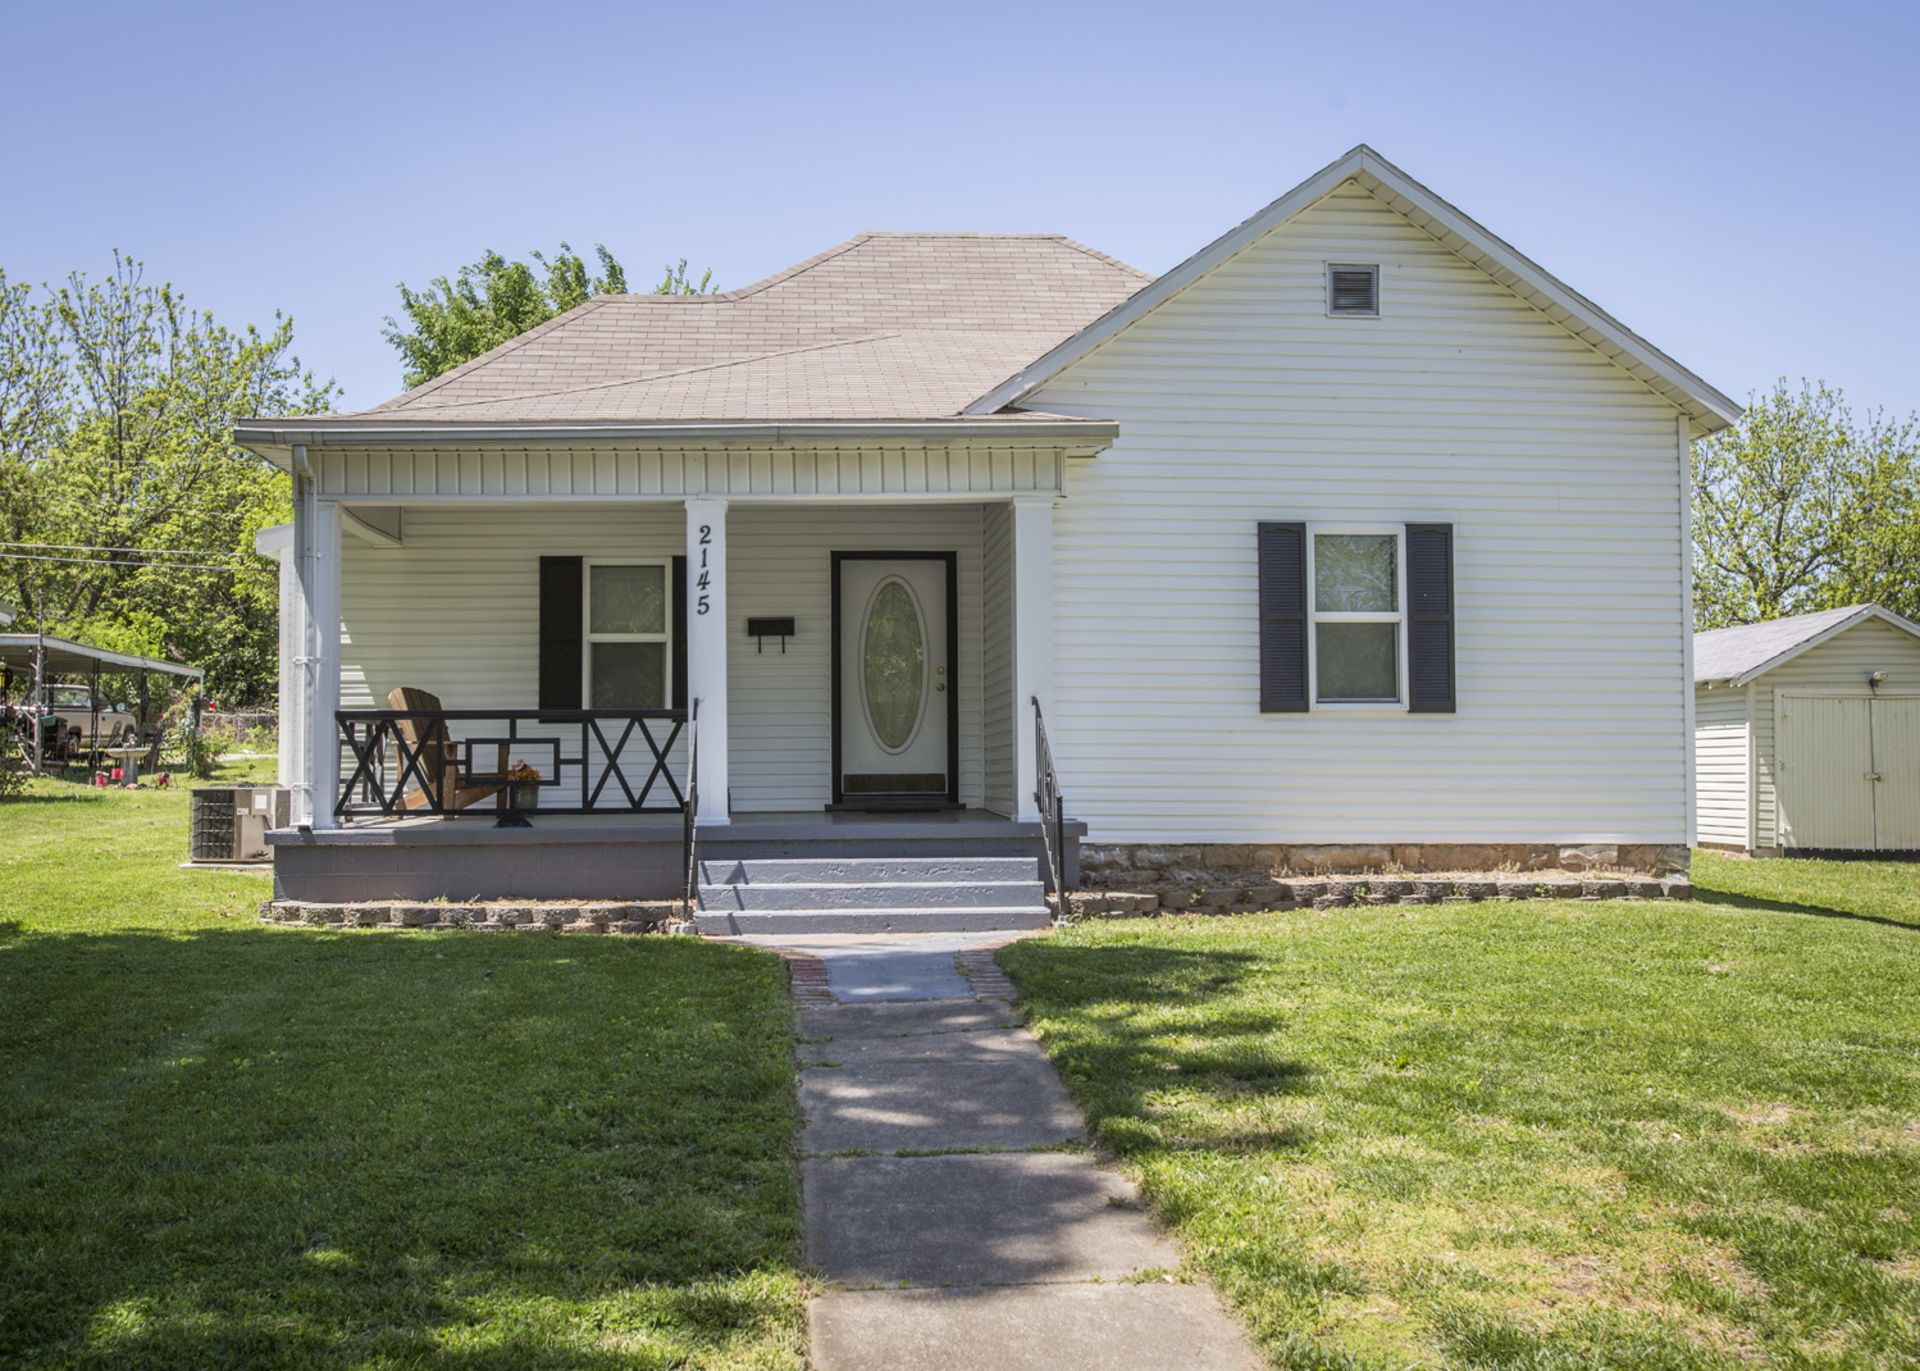 House For Sale in Springfield, MO. Hardwood Floors, Great Lot!